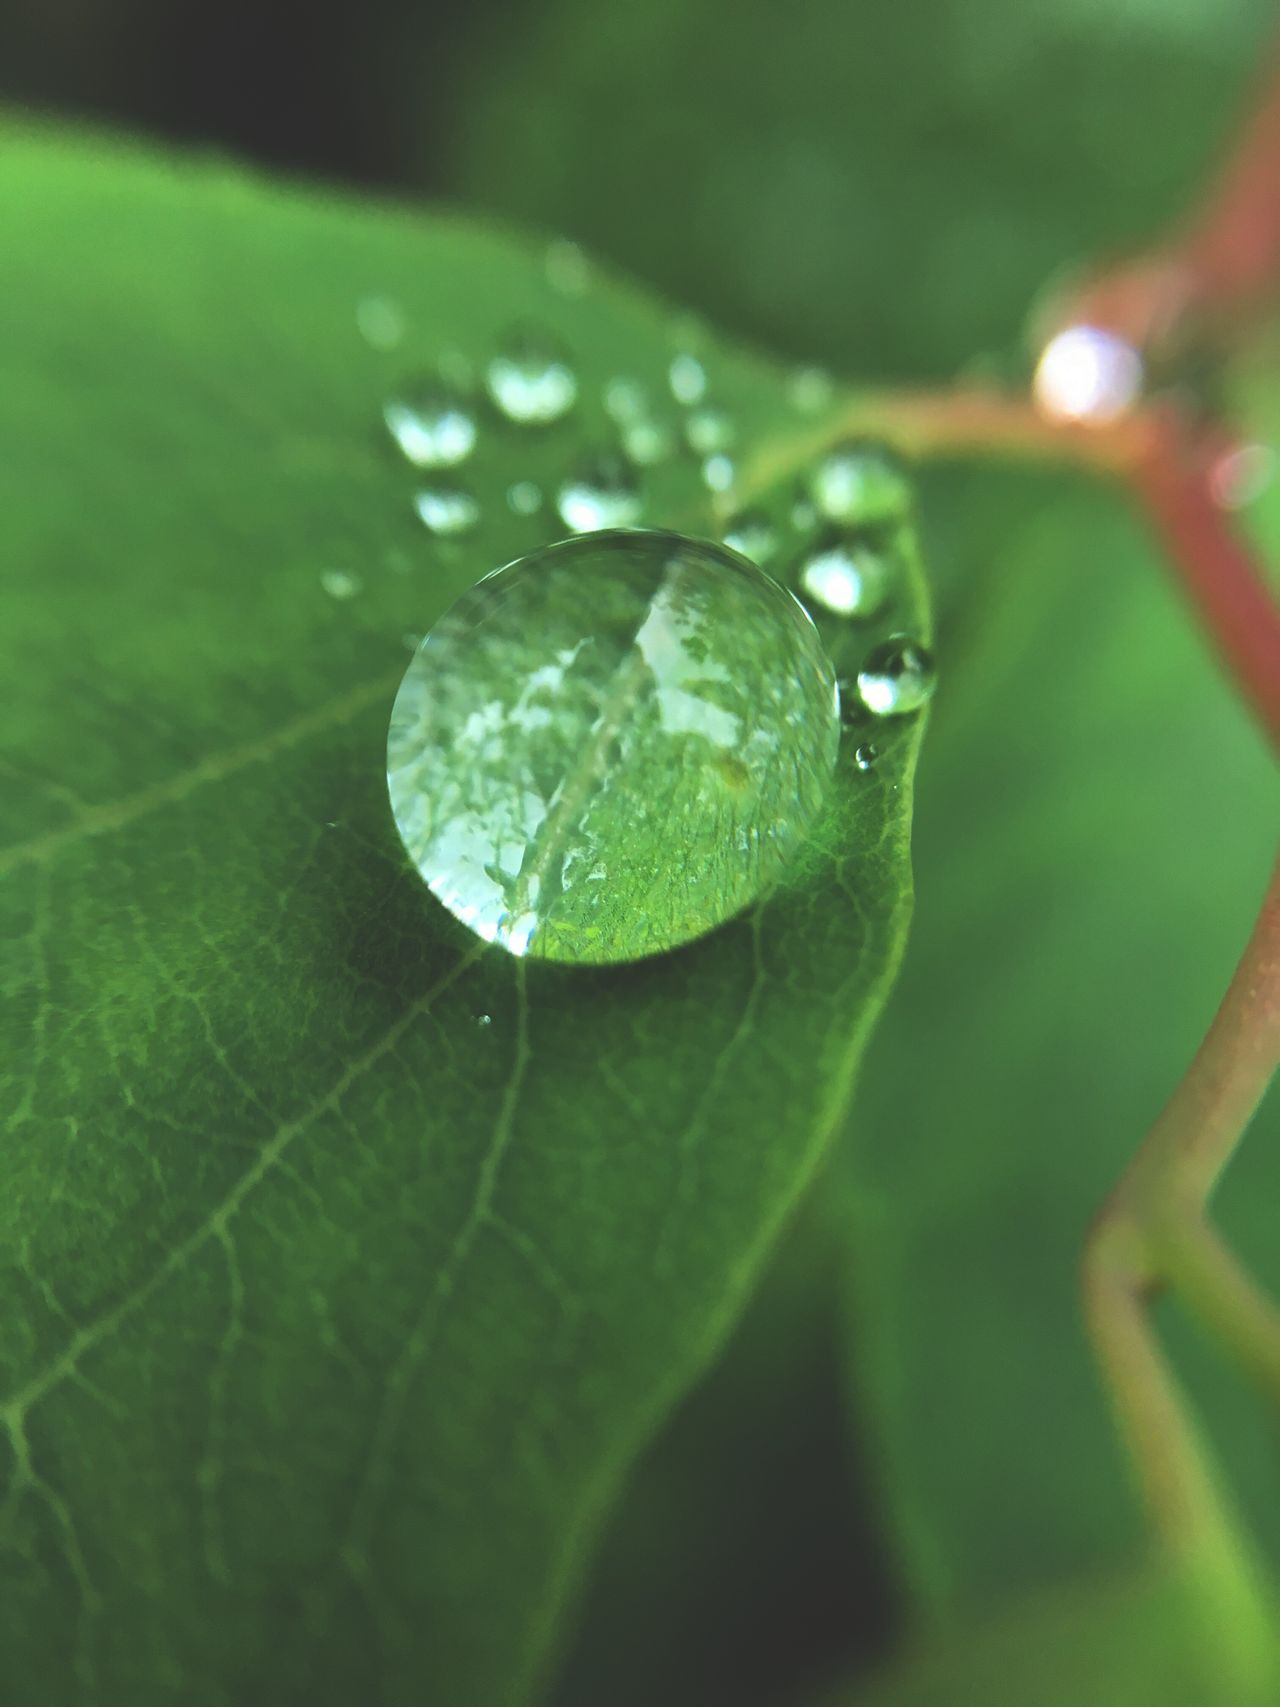 Leaf Drop Water Nature Close-up Wet No People Growth Plant Green Color Fragility Day Animal Themes Beauty In Nature One Animal Outdoors Freshness